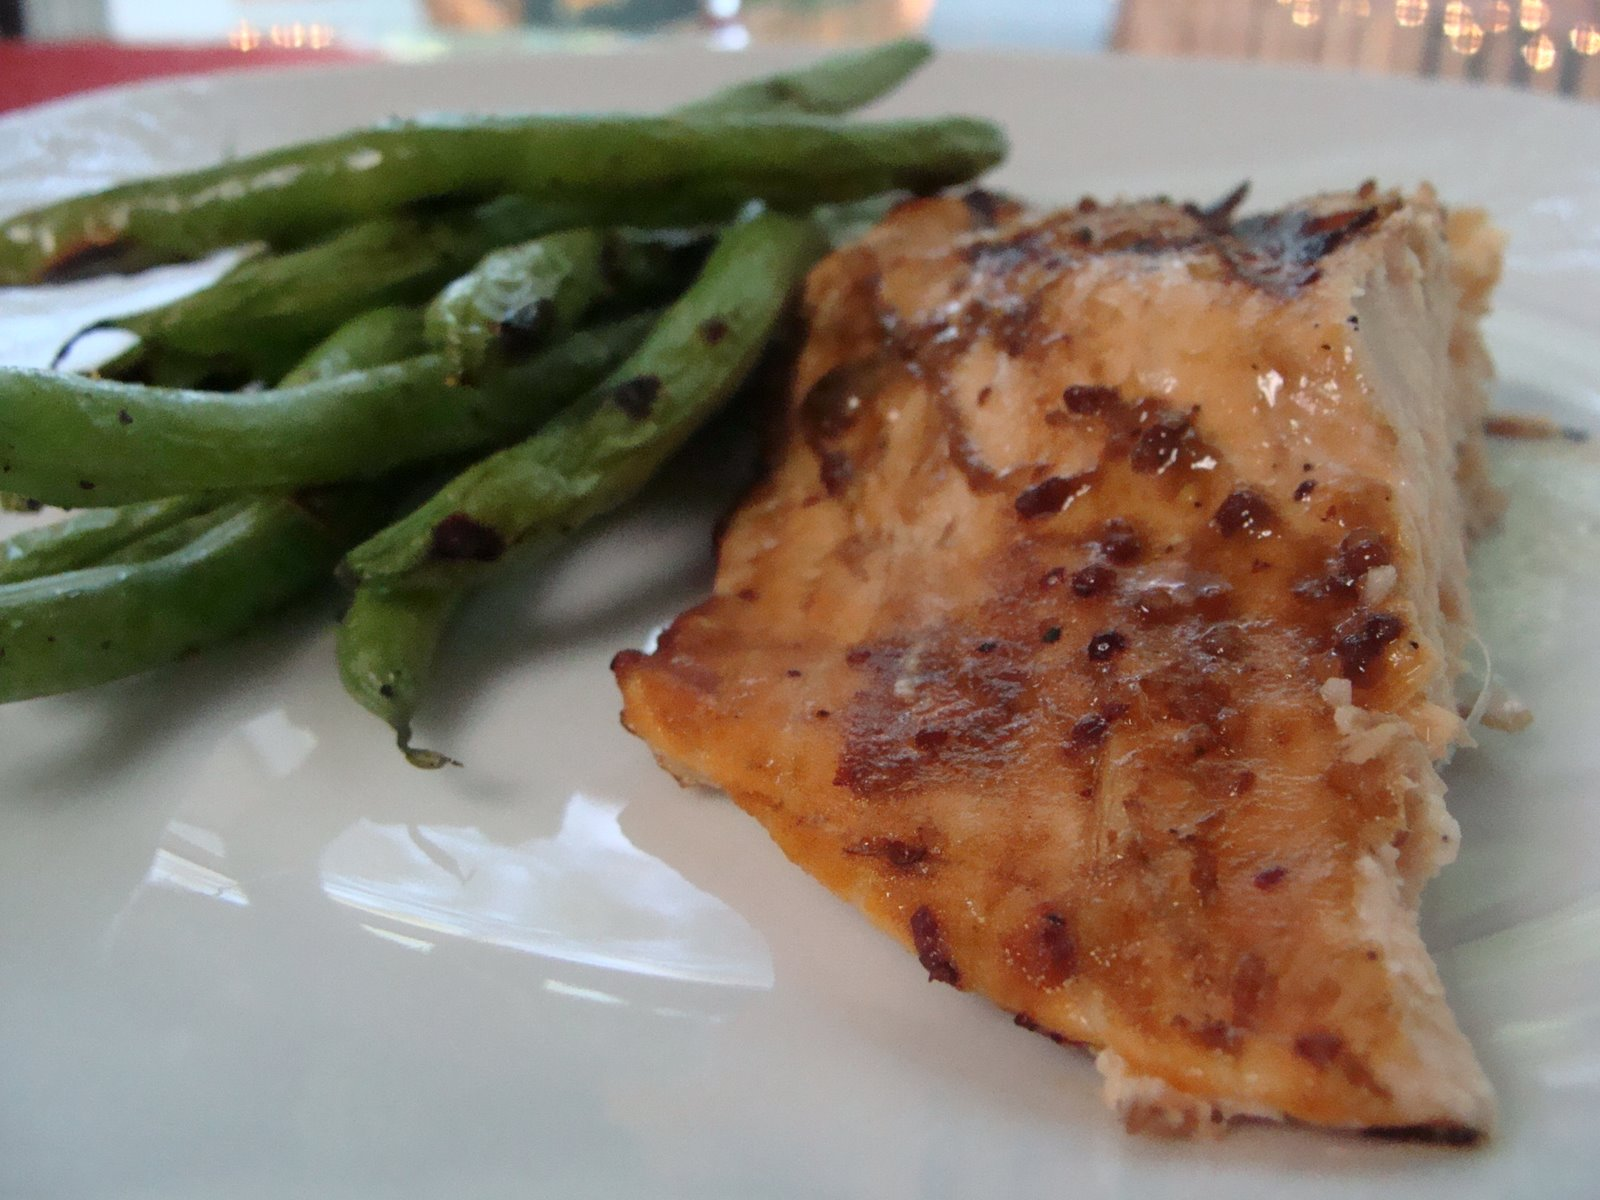 Grilled Salmon with Honey Mustard Glaze